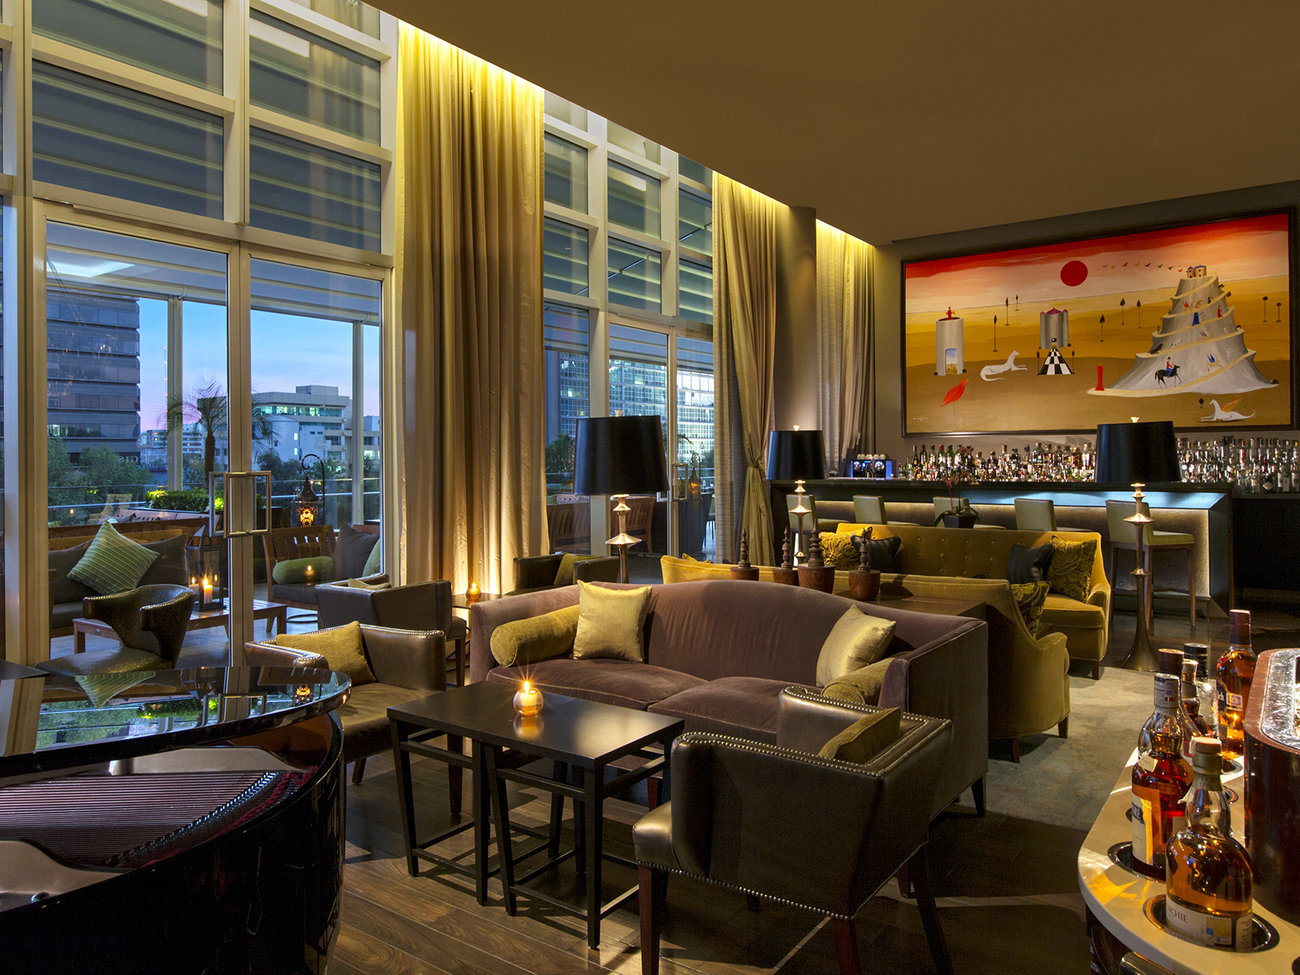 King Cole Bar at The St. Regis in Mexico City